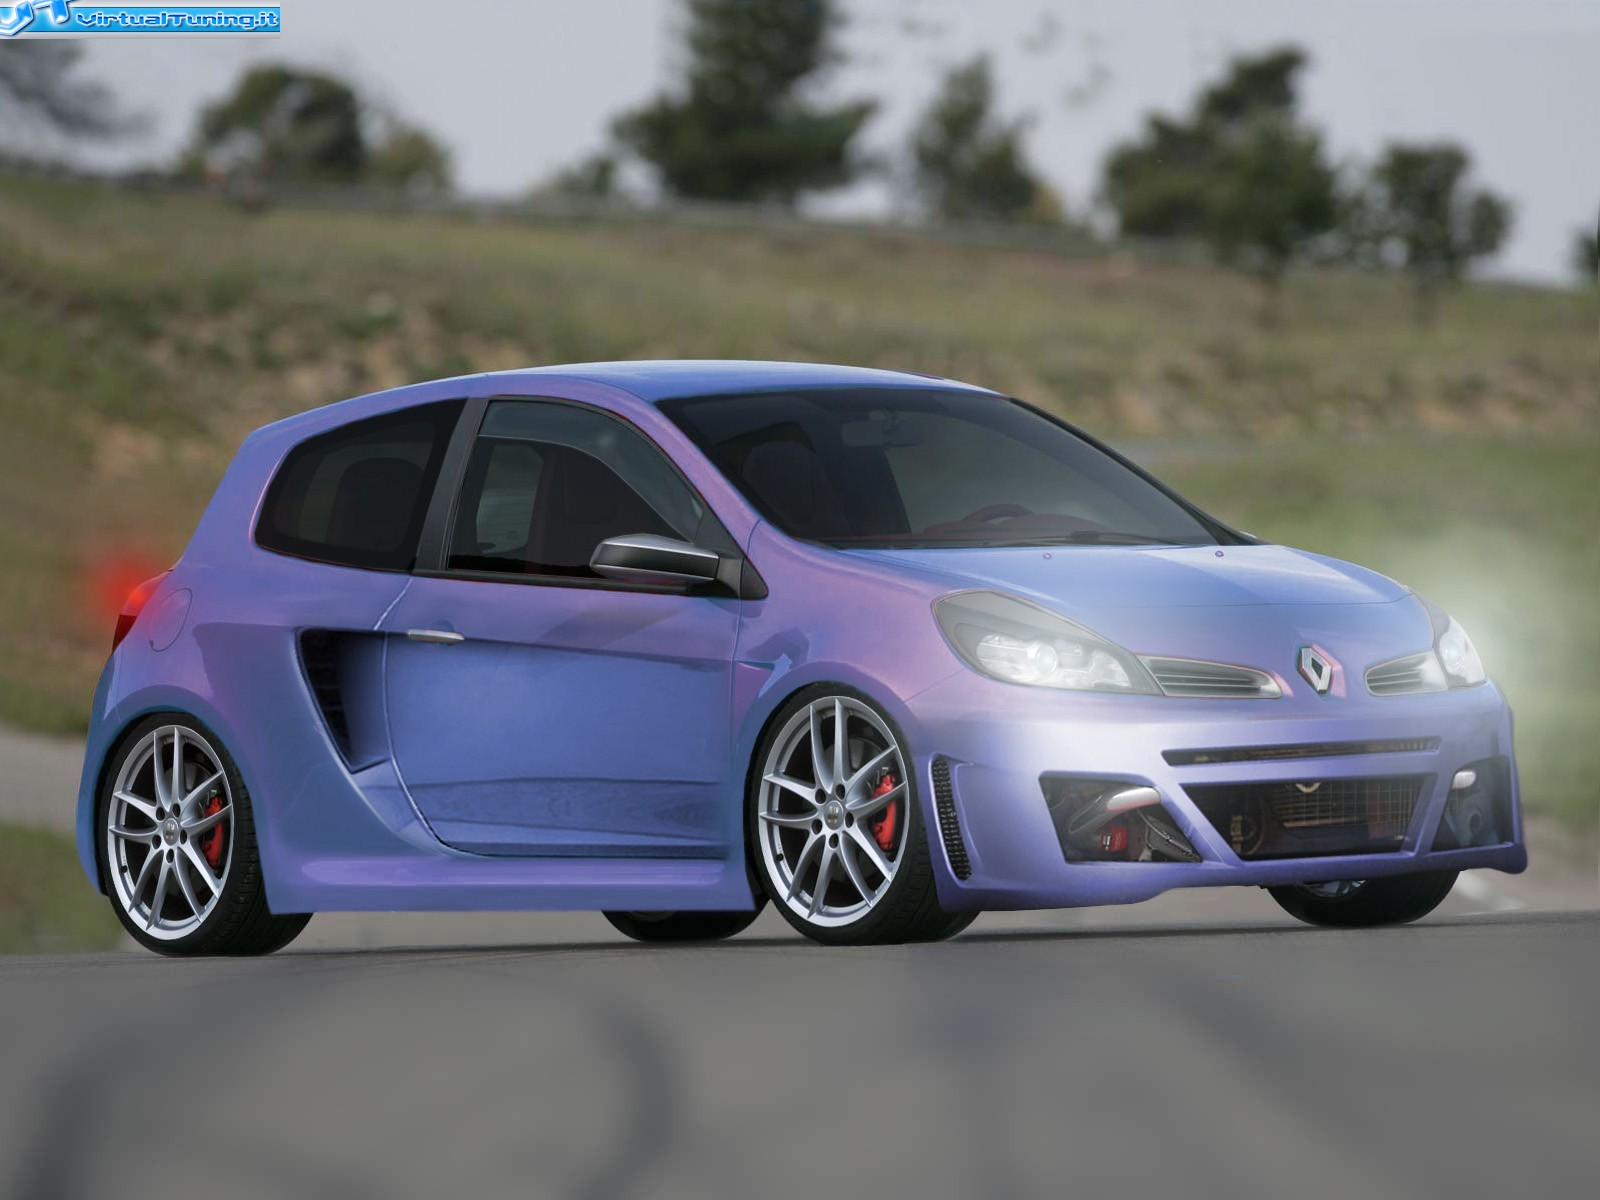 renault clio rs by amodio tuning virtualtuning it. Black Bedroom Furniture Sets. Home Design Ideas